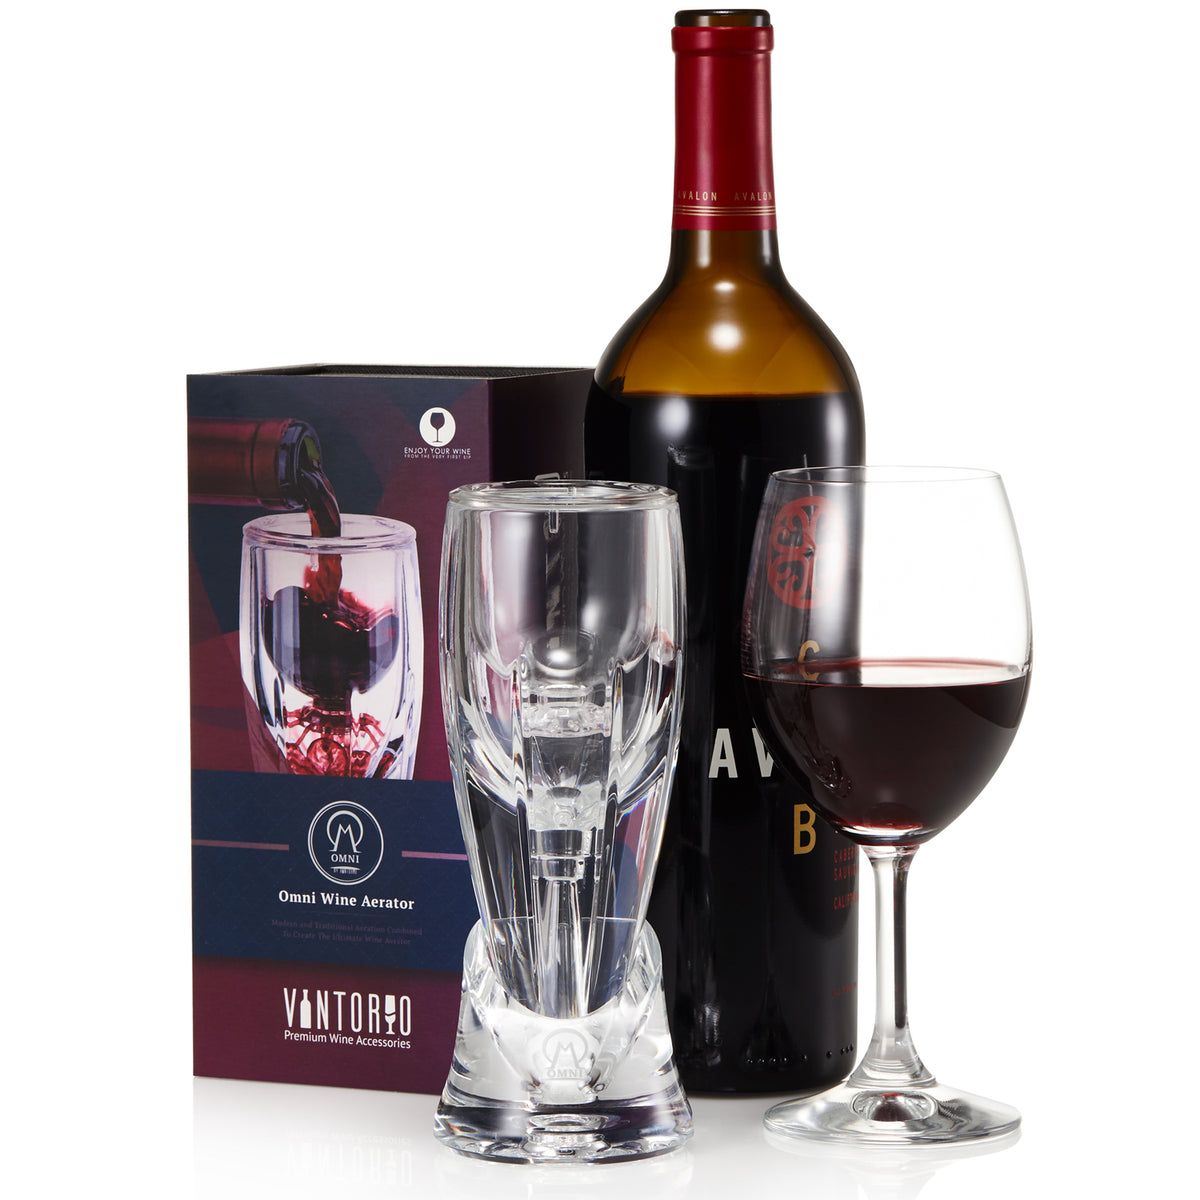 Vintorio Wine Aerator - Wine Gift for Her or Wine Gift for Him